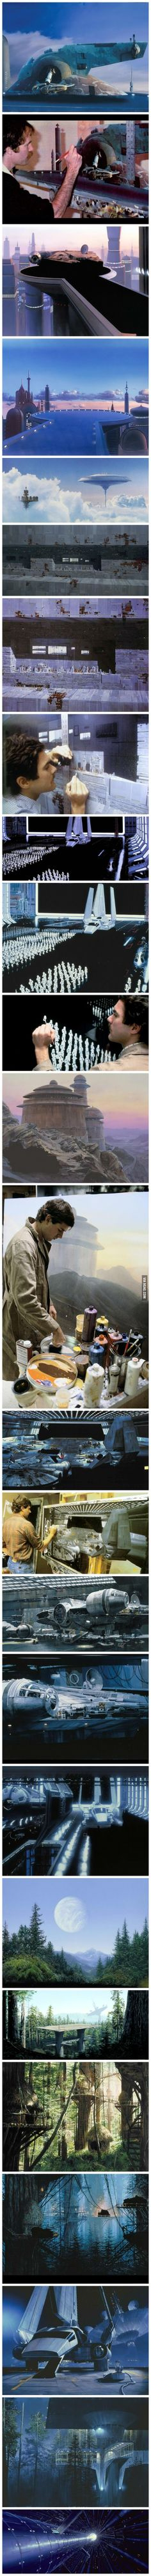 Matte paintings Used In The Original Star Wars Trilogy Totally Out Beat CGI Today